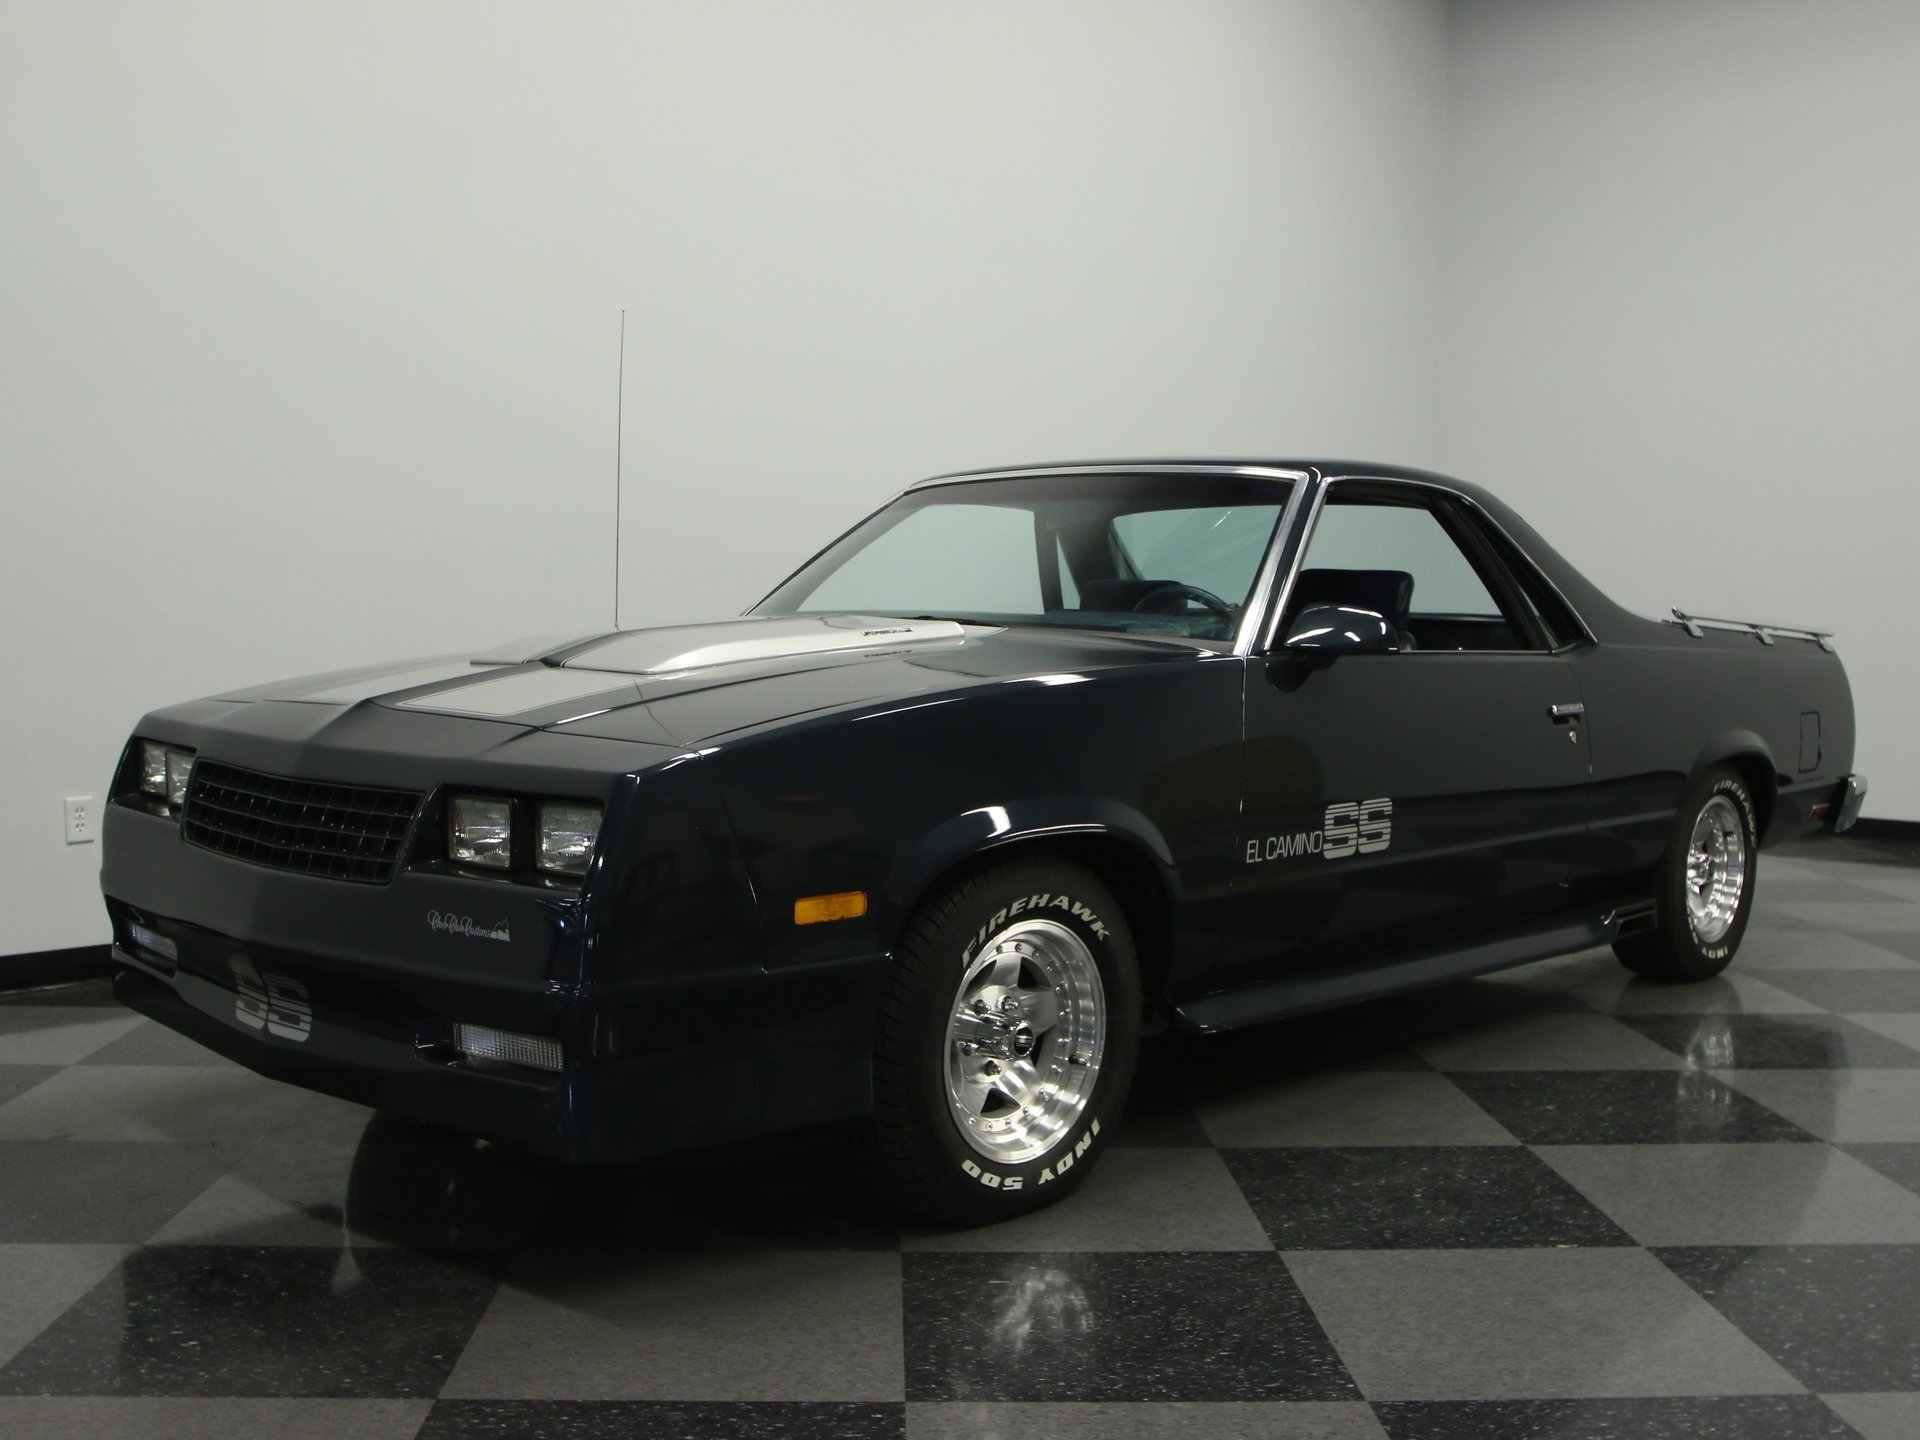 1980 El Camino Gas Mileage 1987 Chevrolet El Camino Streetside Classics The Nation S